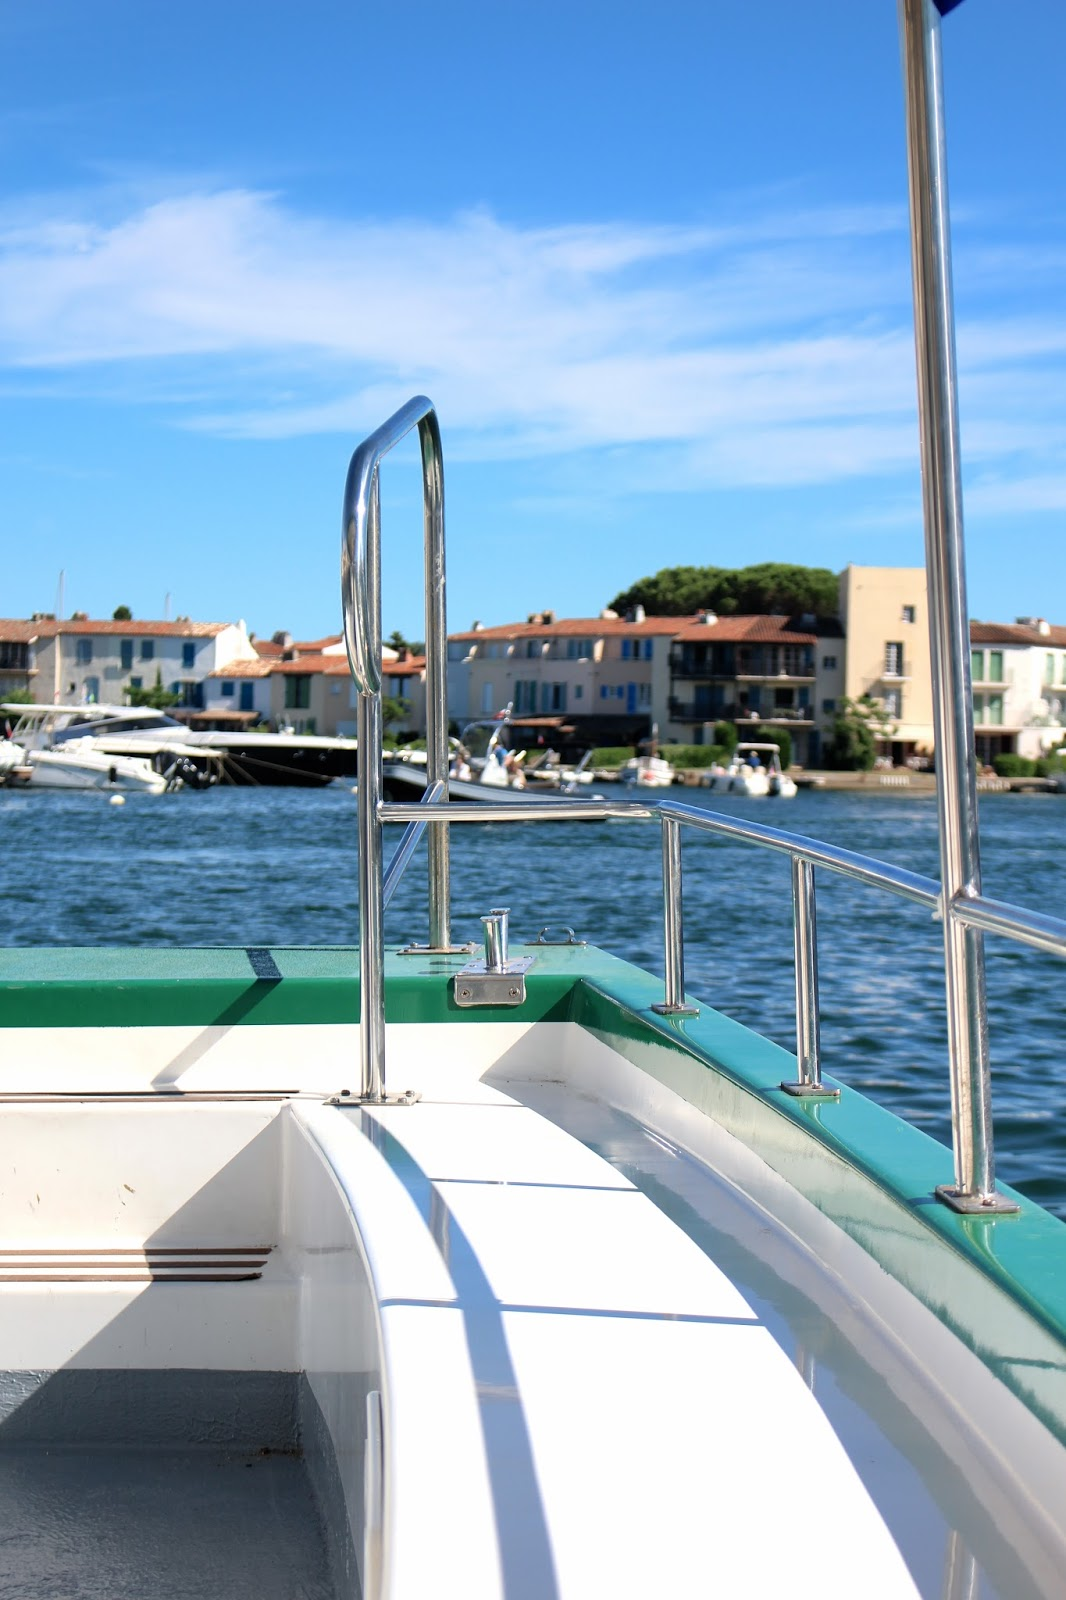 Summer boat ride through Port Grimaud